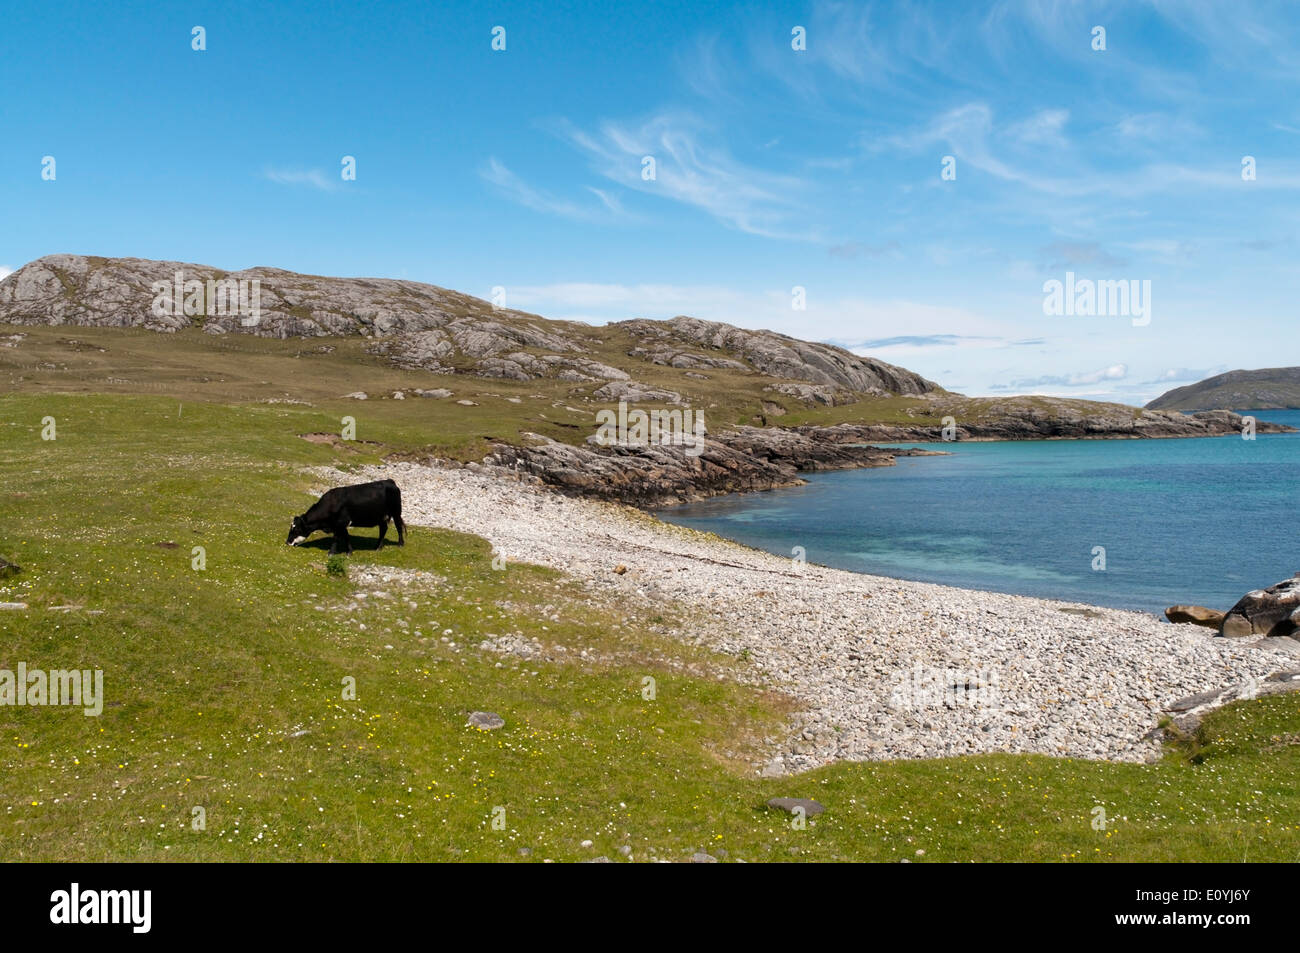 Cow grazing on machair behind a small beach on the island of Vatersay in the Outer Hebrides. Stock Photo